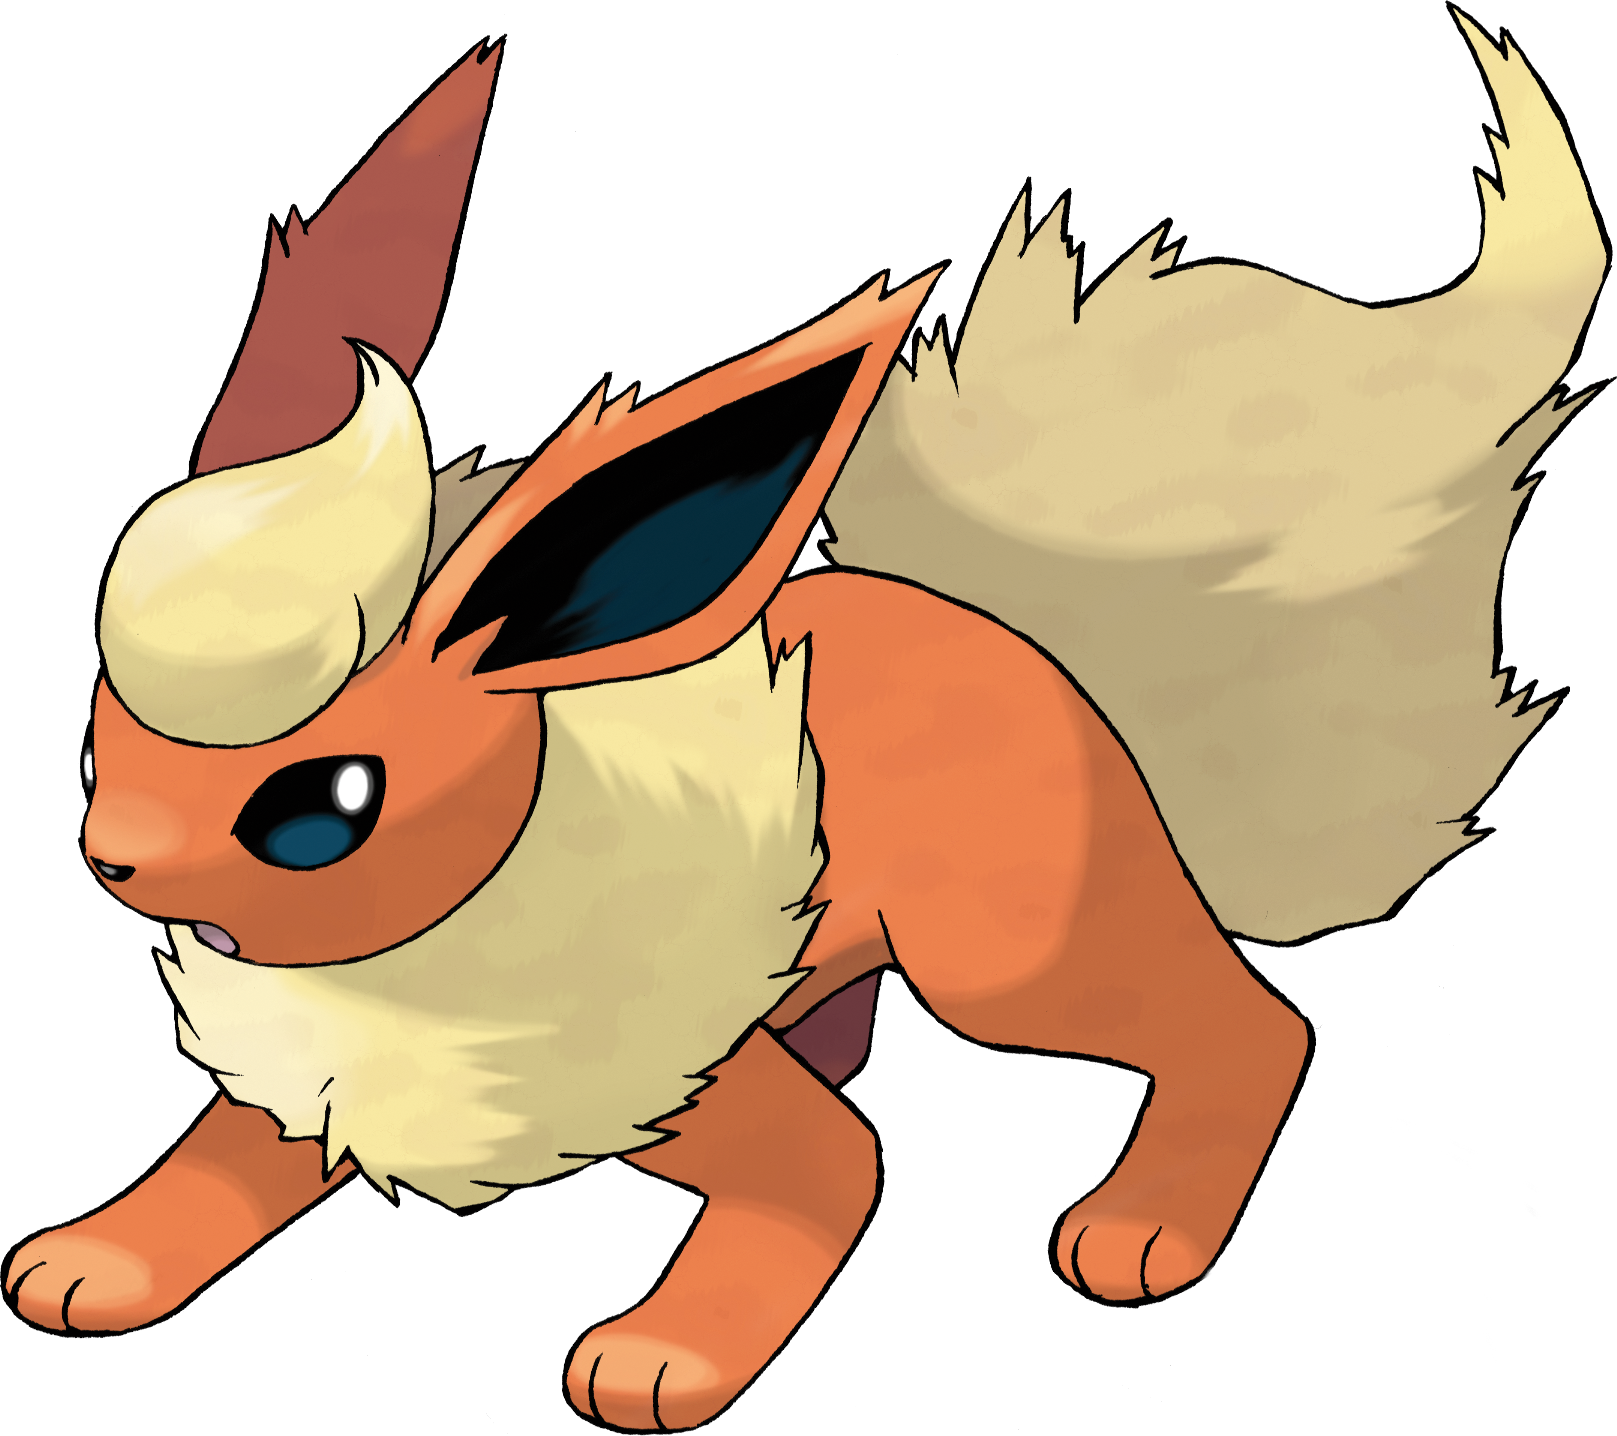 About your character: Sugimori_136